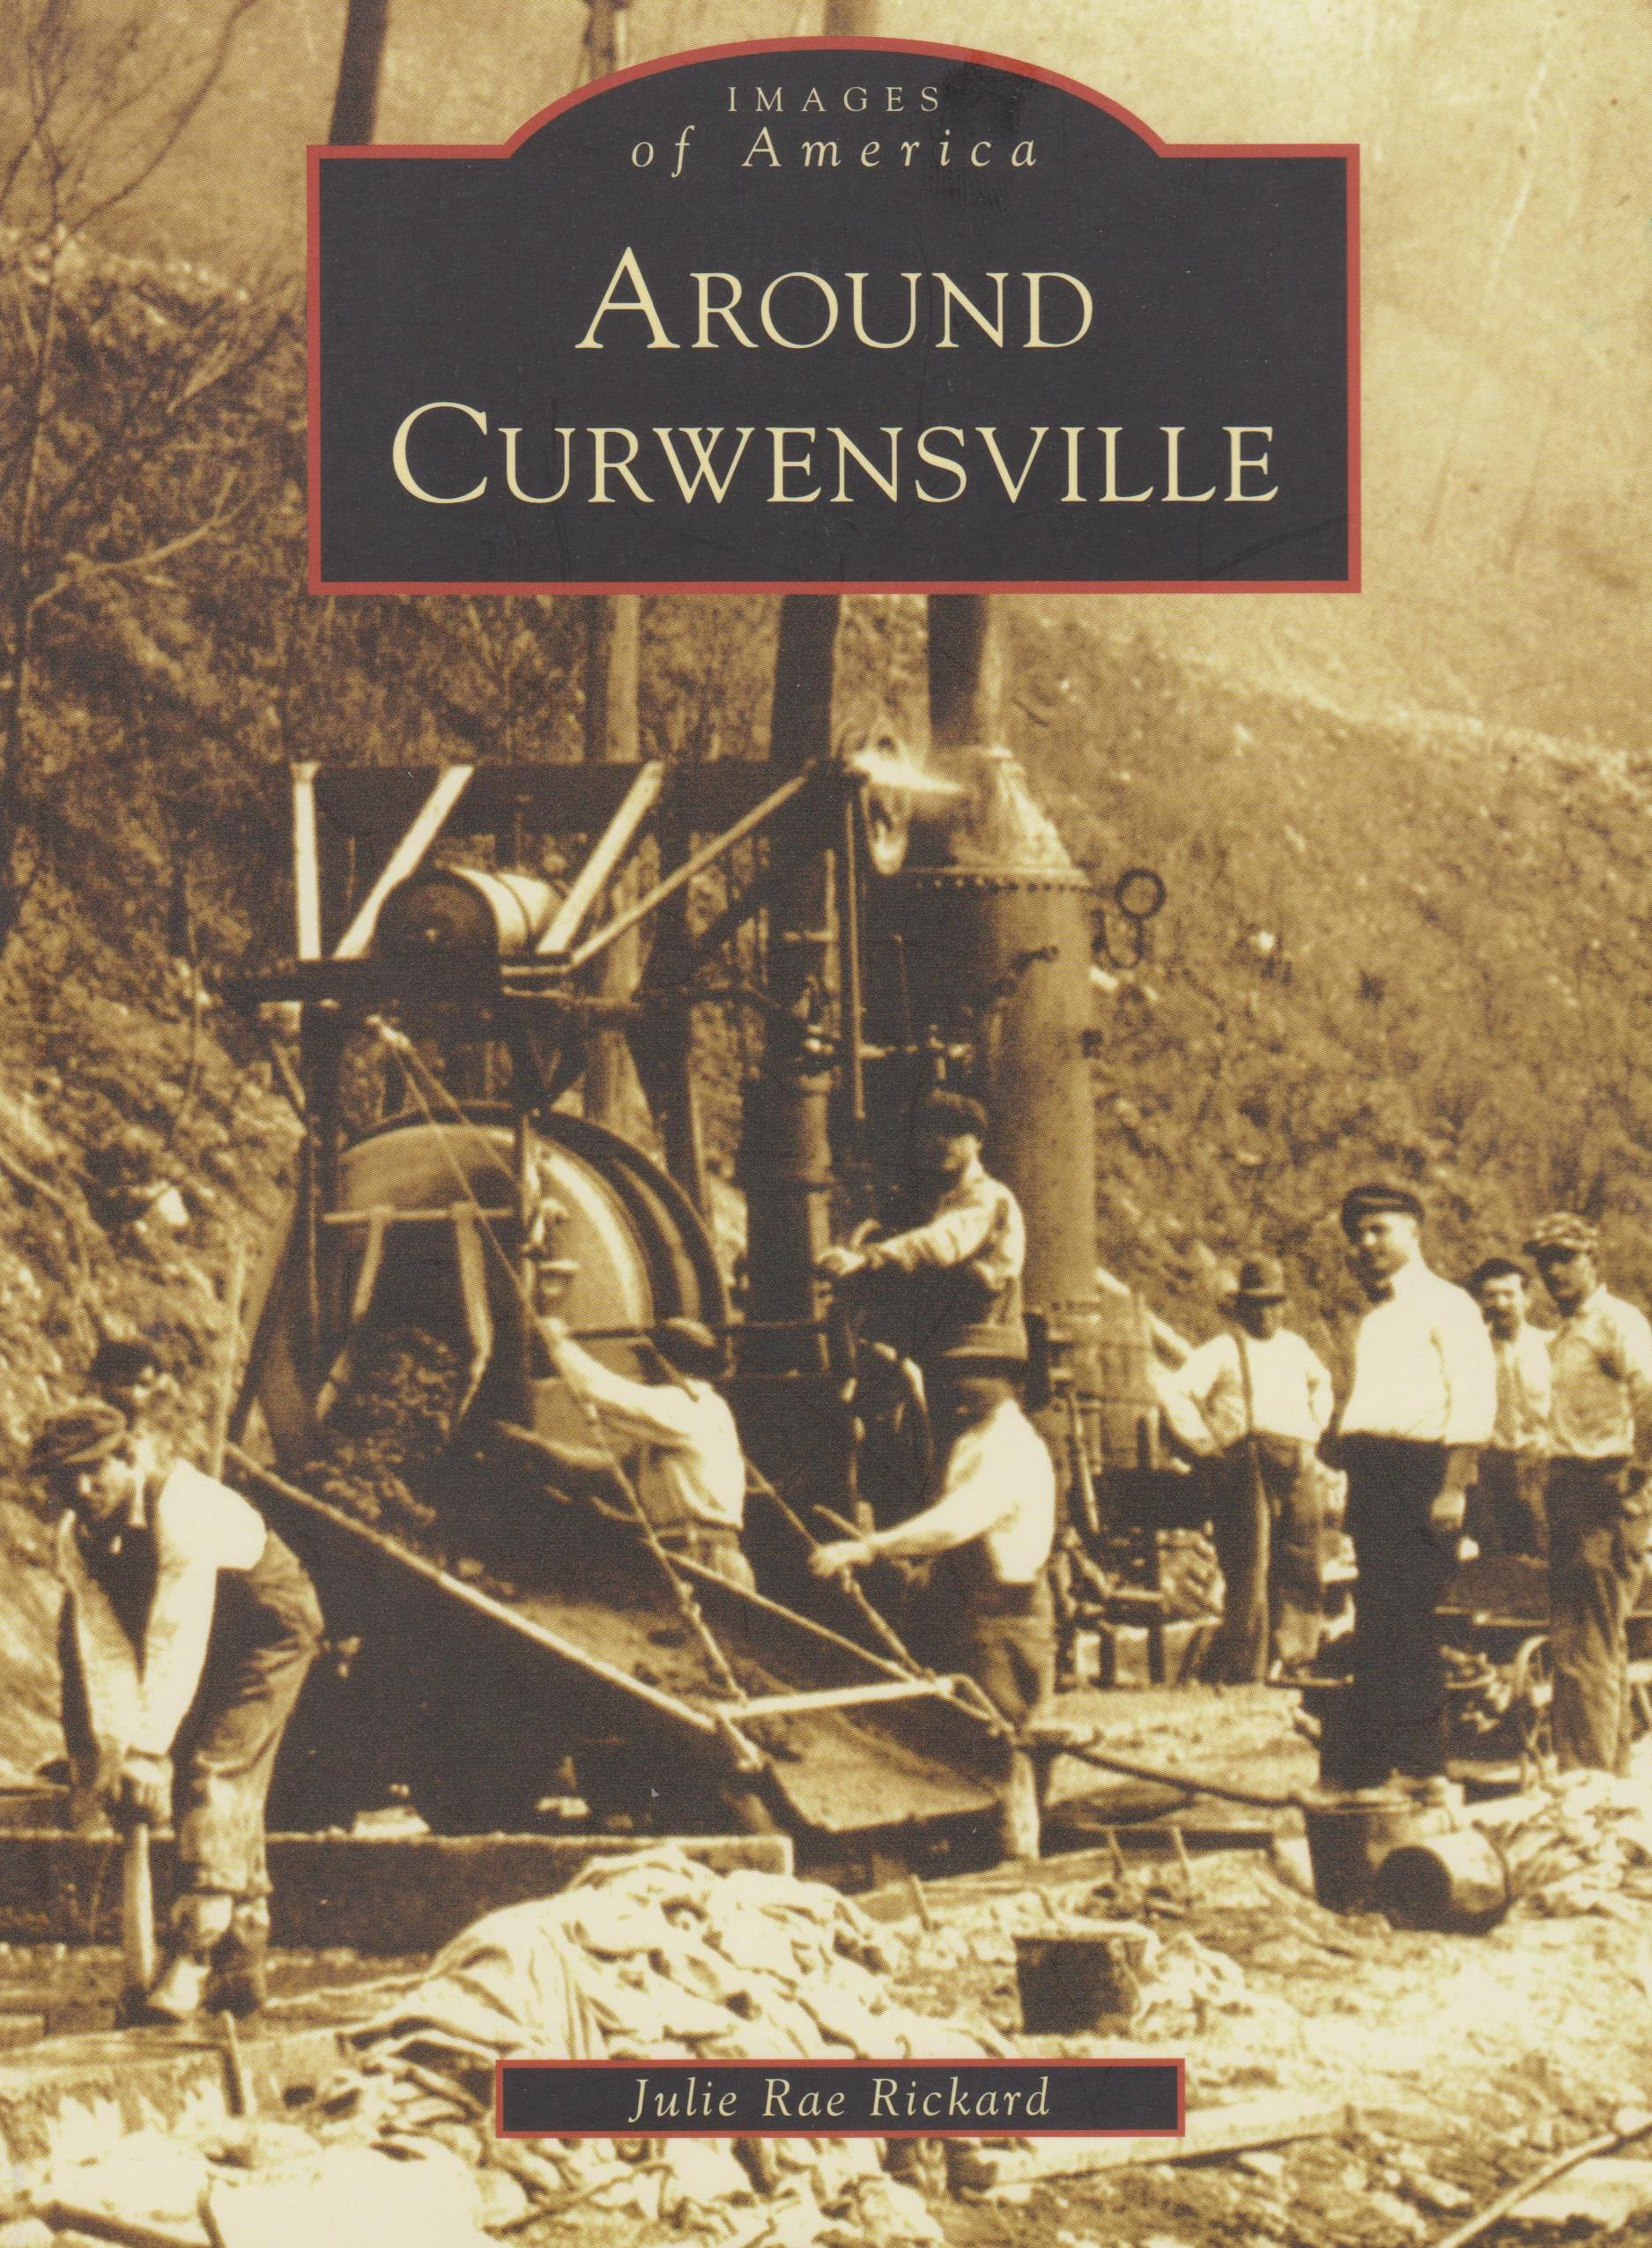 Around Curwensville - 'Images of America'